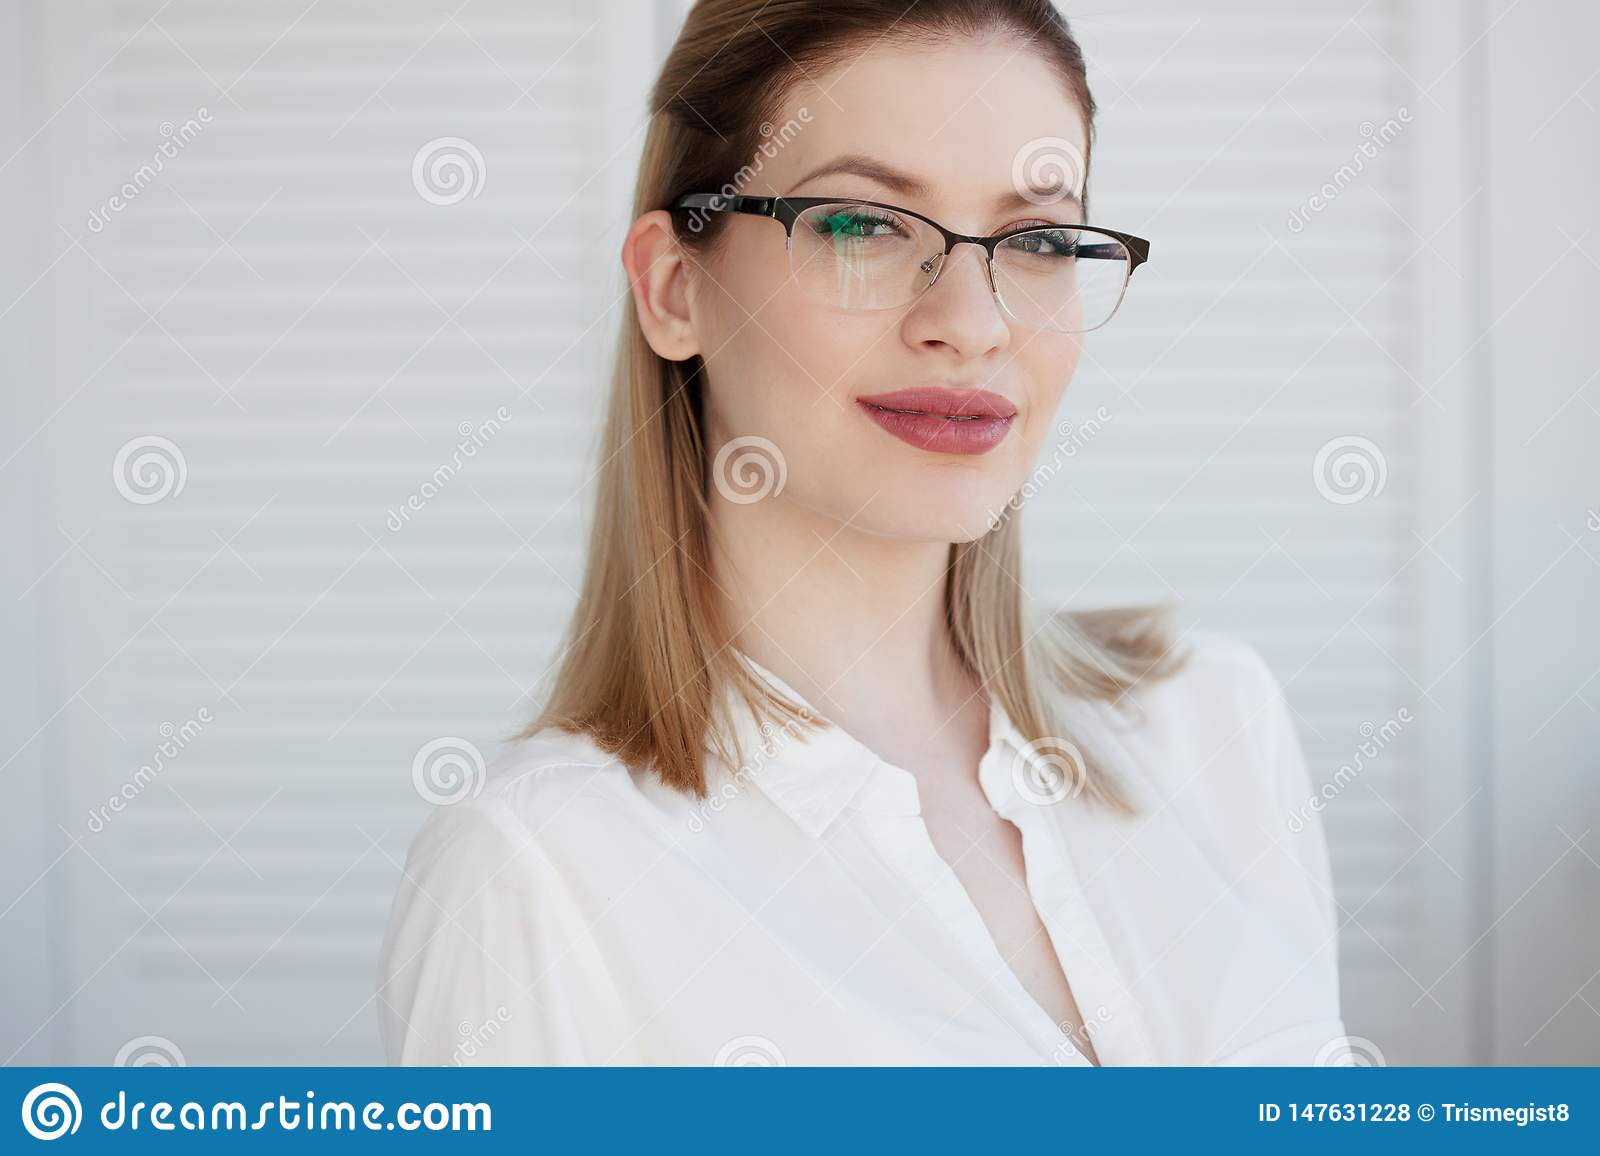 Young business lady in white shirt and glasses. Attractive young woman smiling